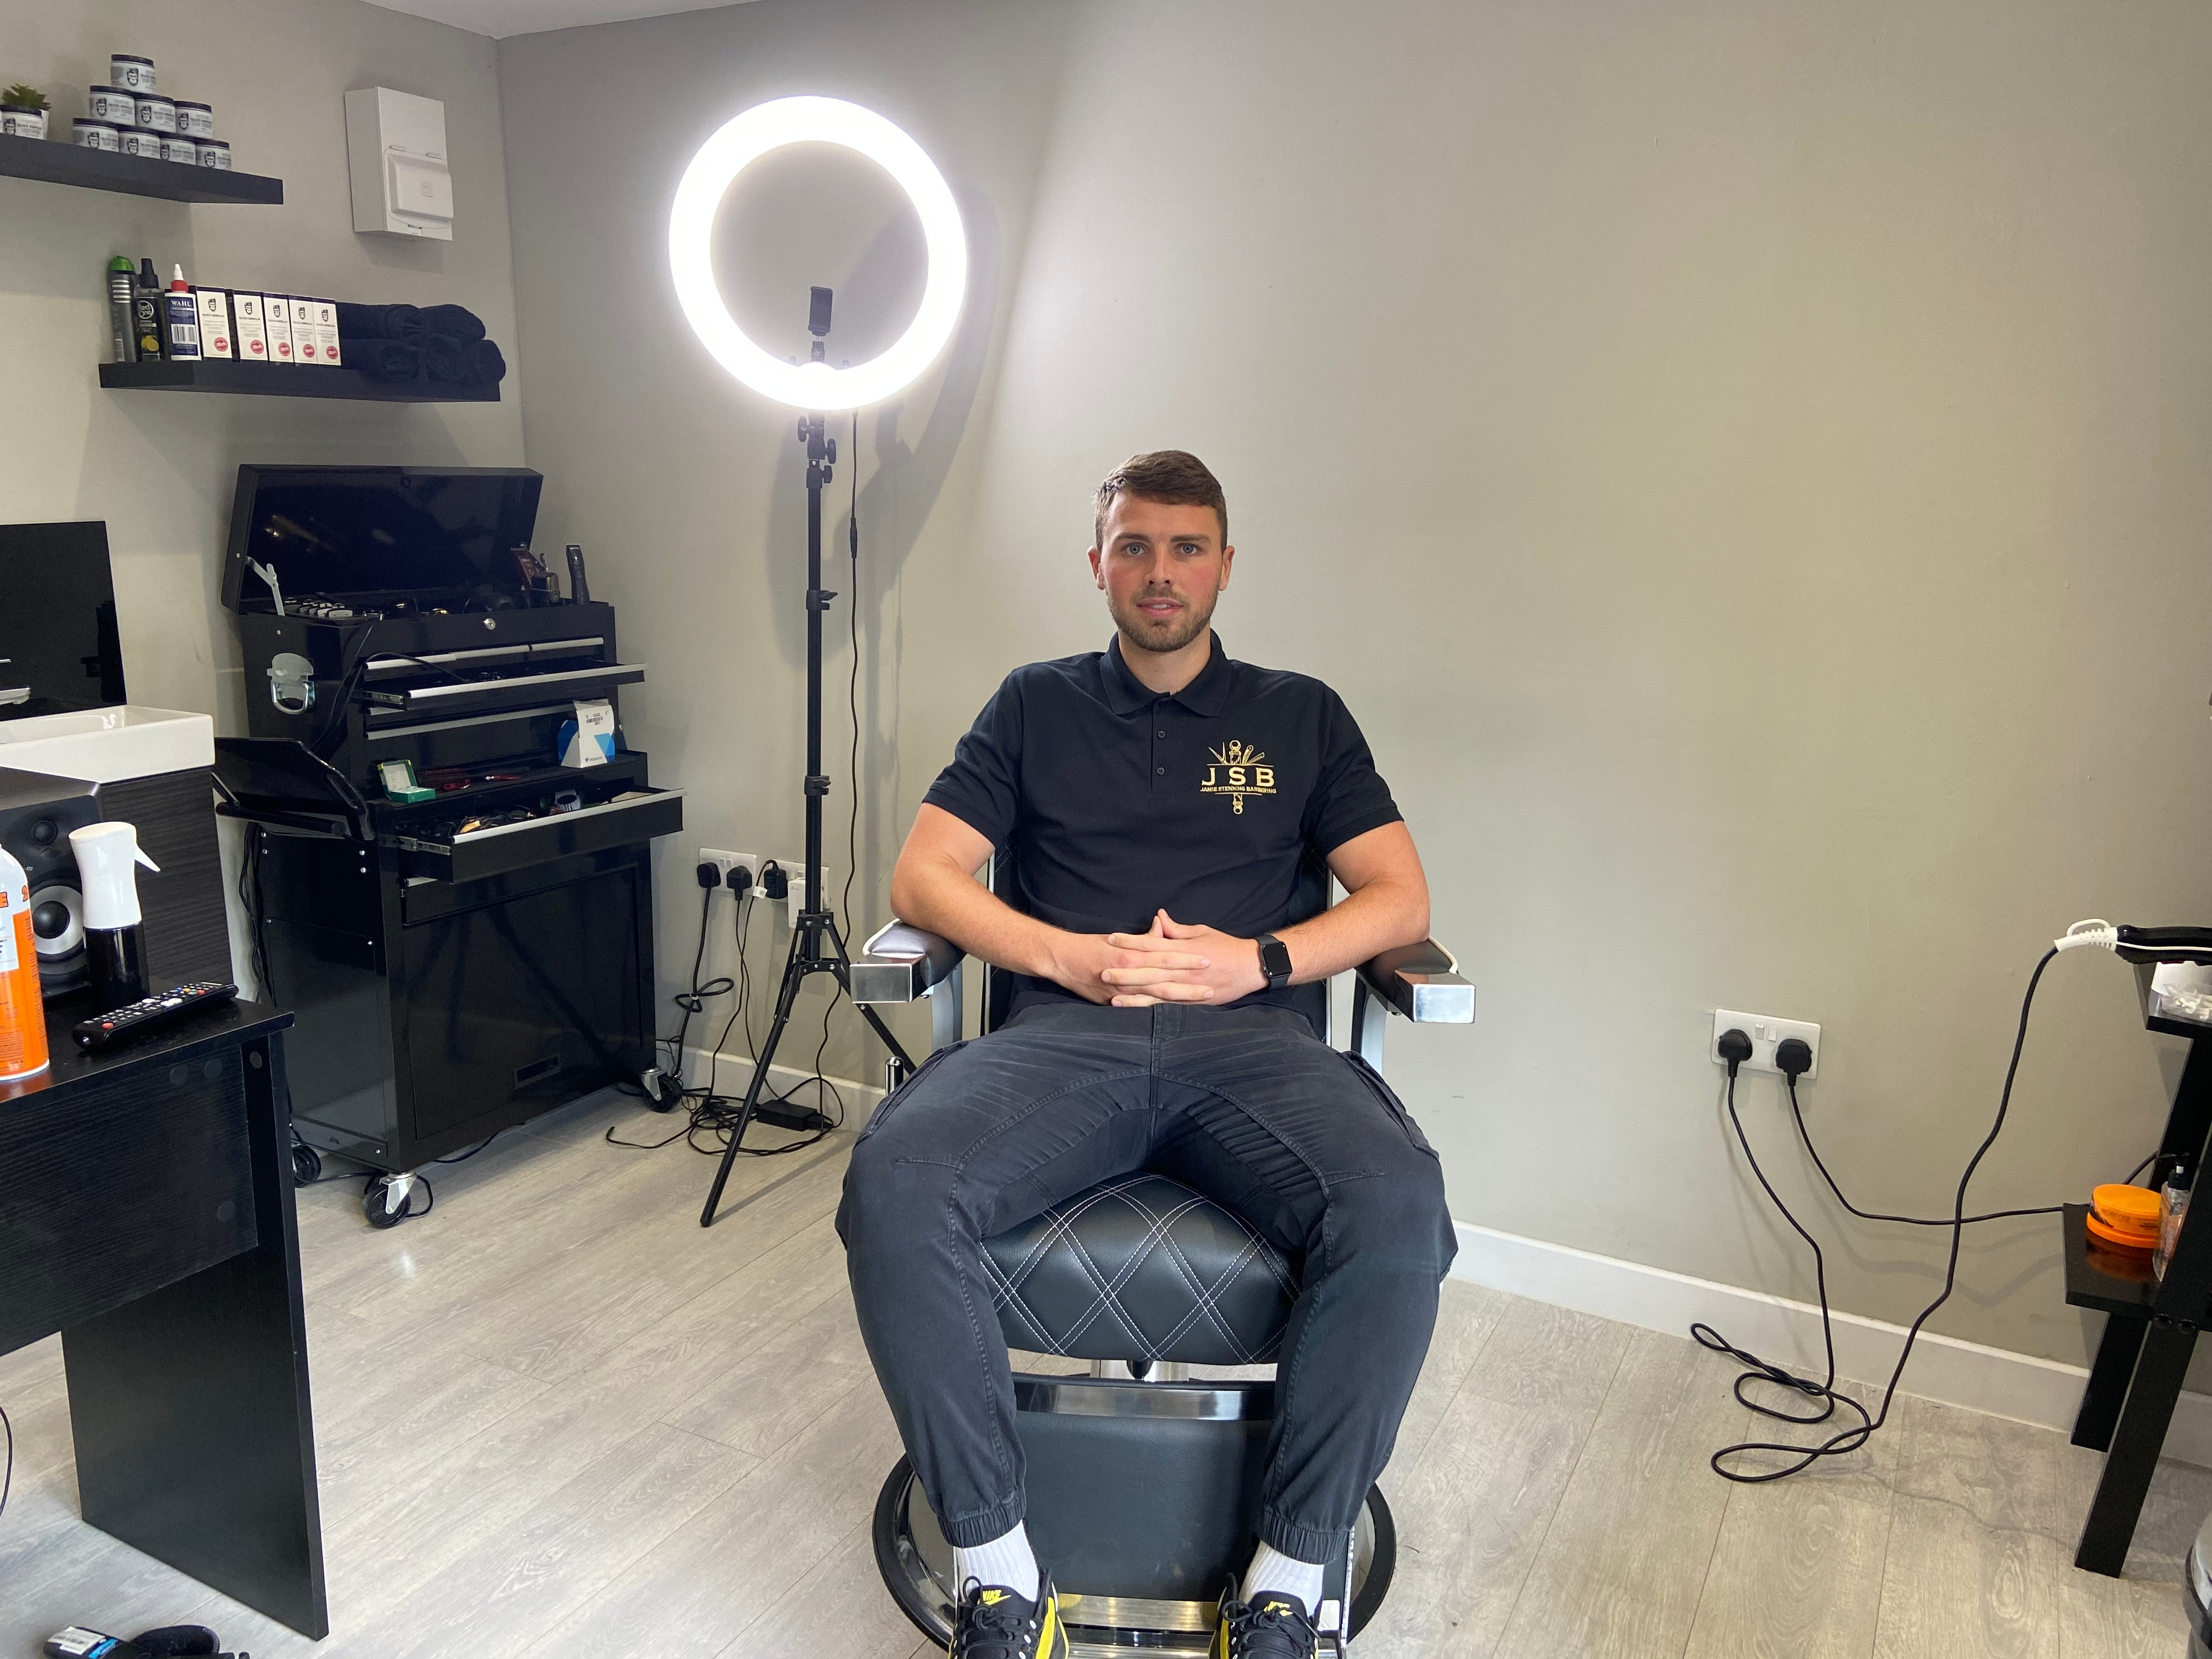 Jamie sitting in his home salon